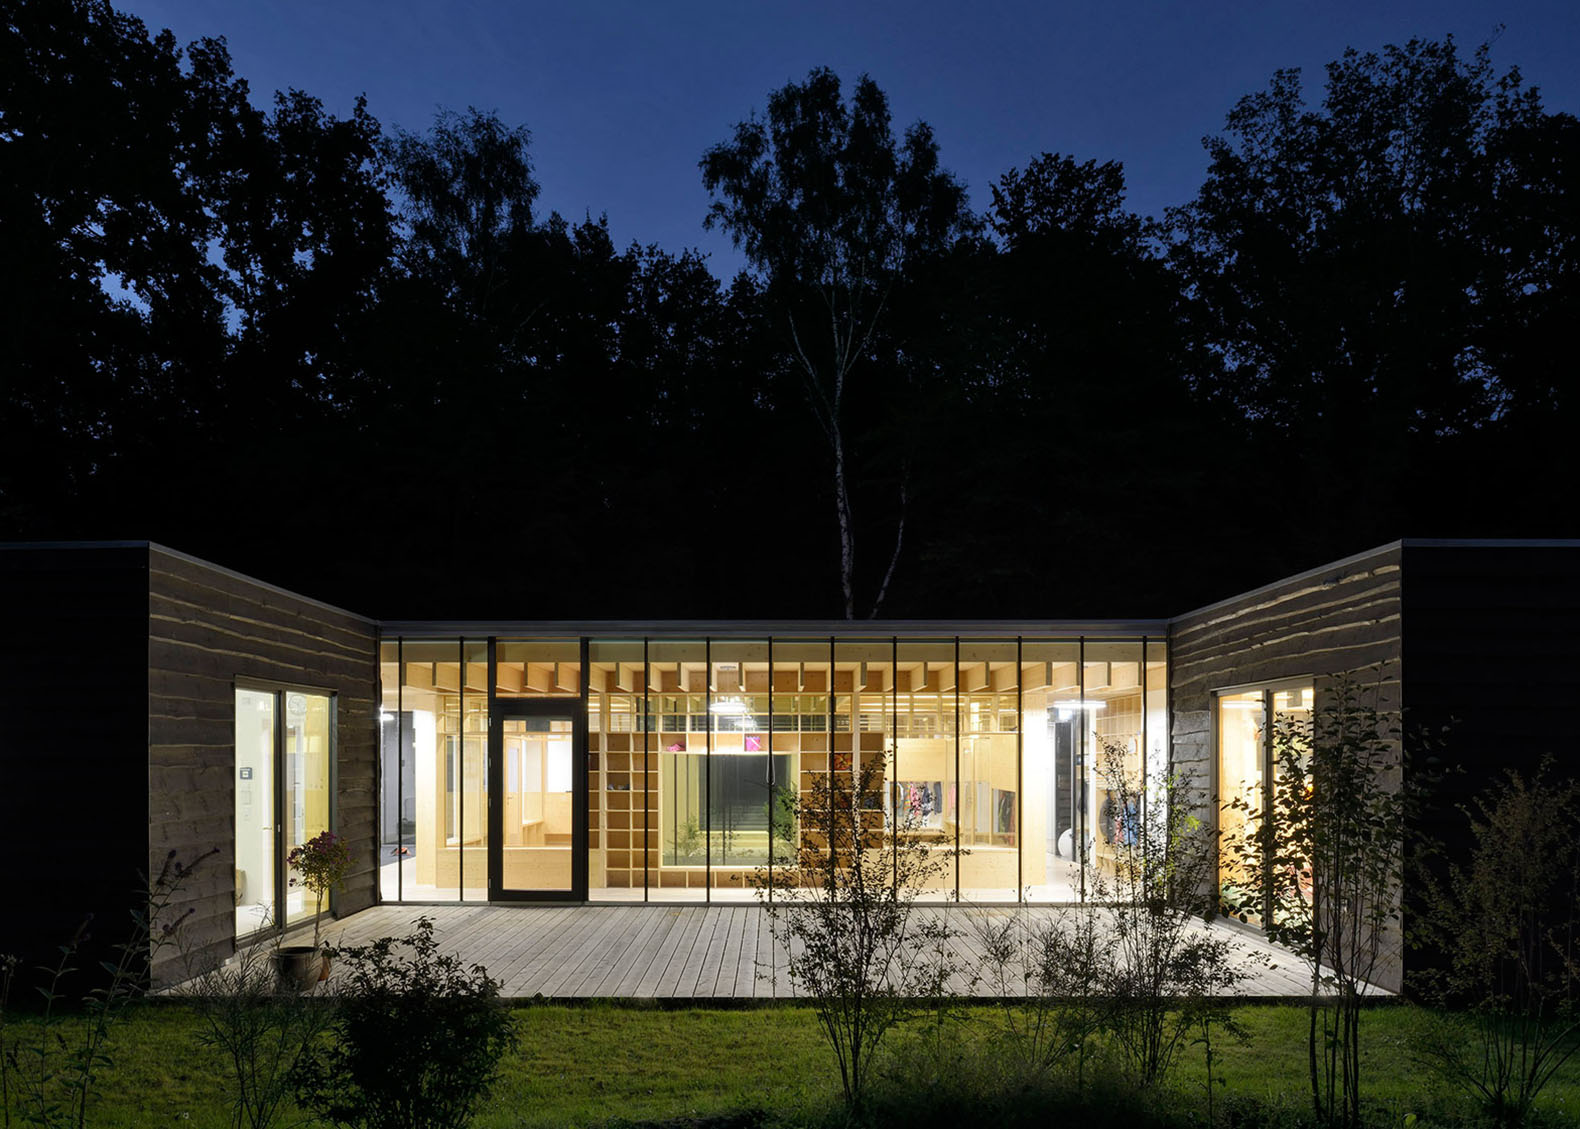 Kita Küche Architektur Small Woodland Nursery In Germany Has A Light Filled